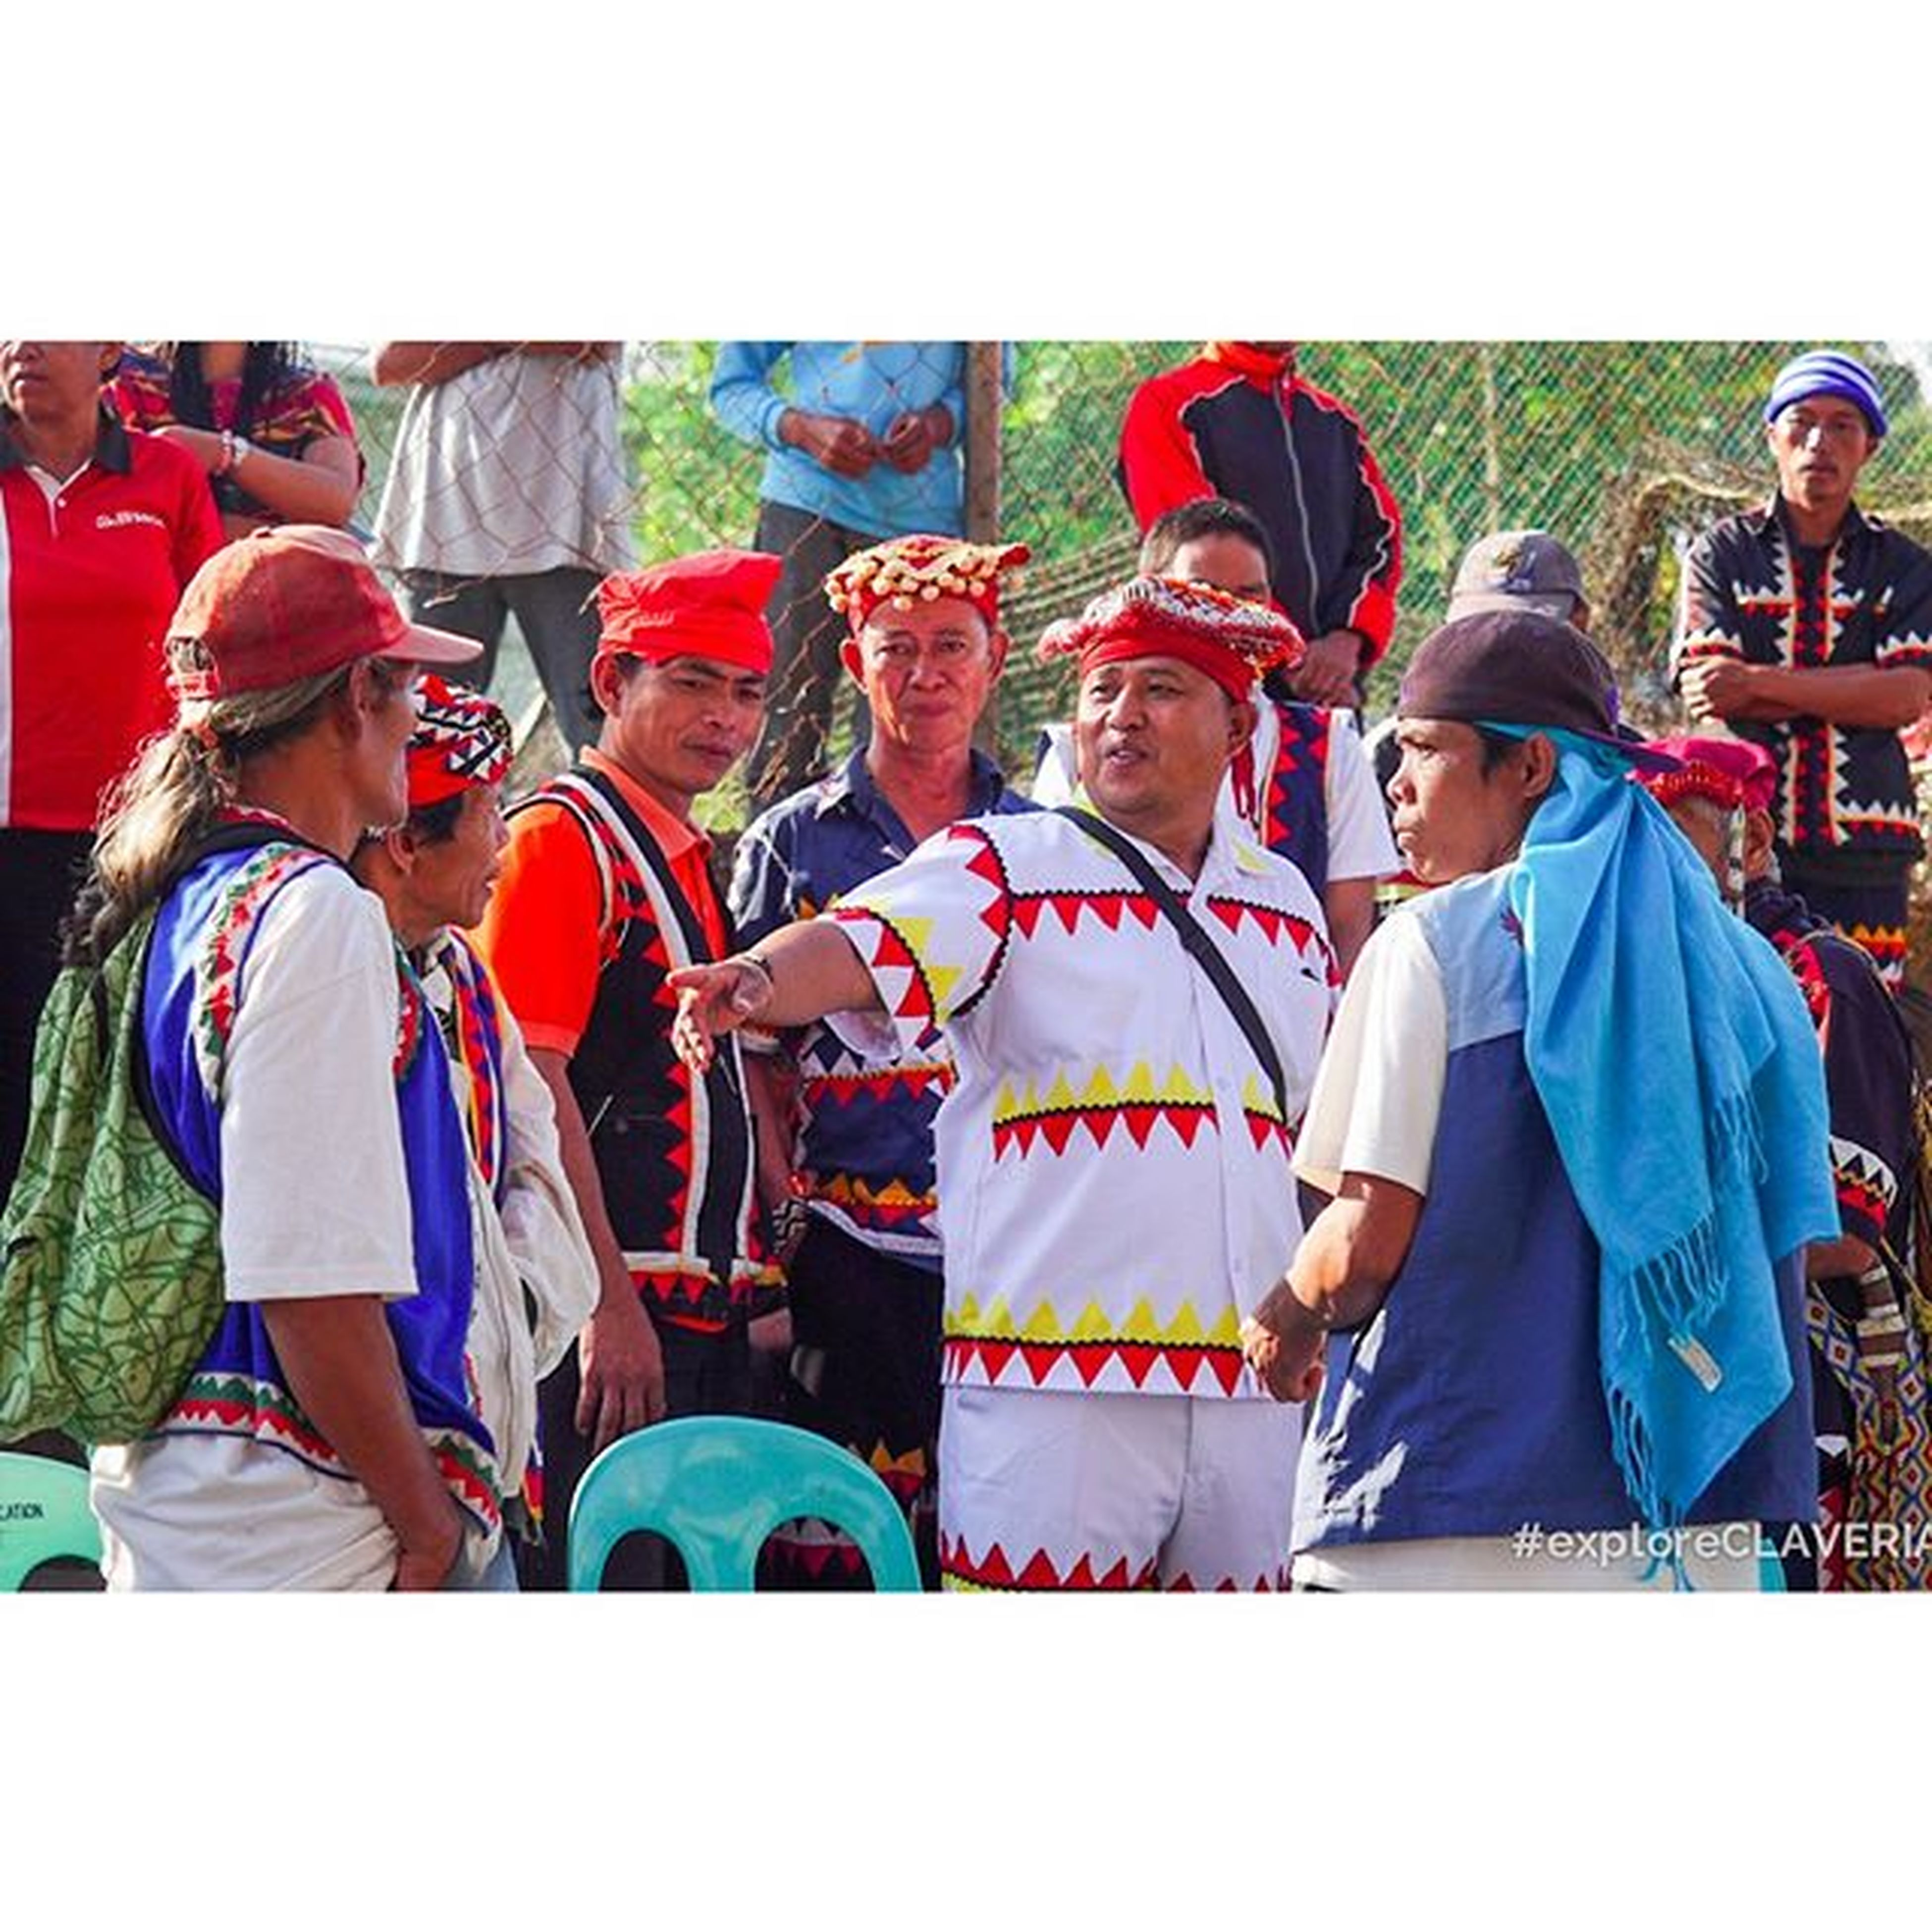 Random clicks from our festival documentation Maisfestival Claveria Misamisoriental ExploreCLAVERIA indigenous people day travelph people earth